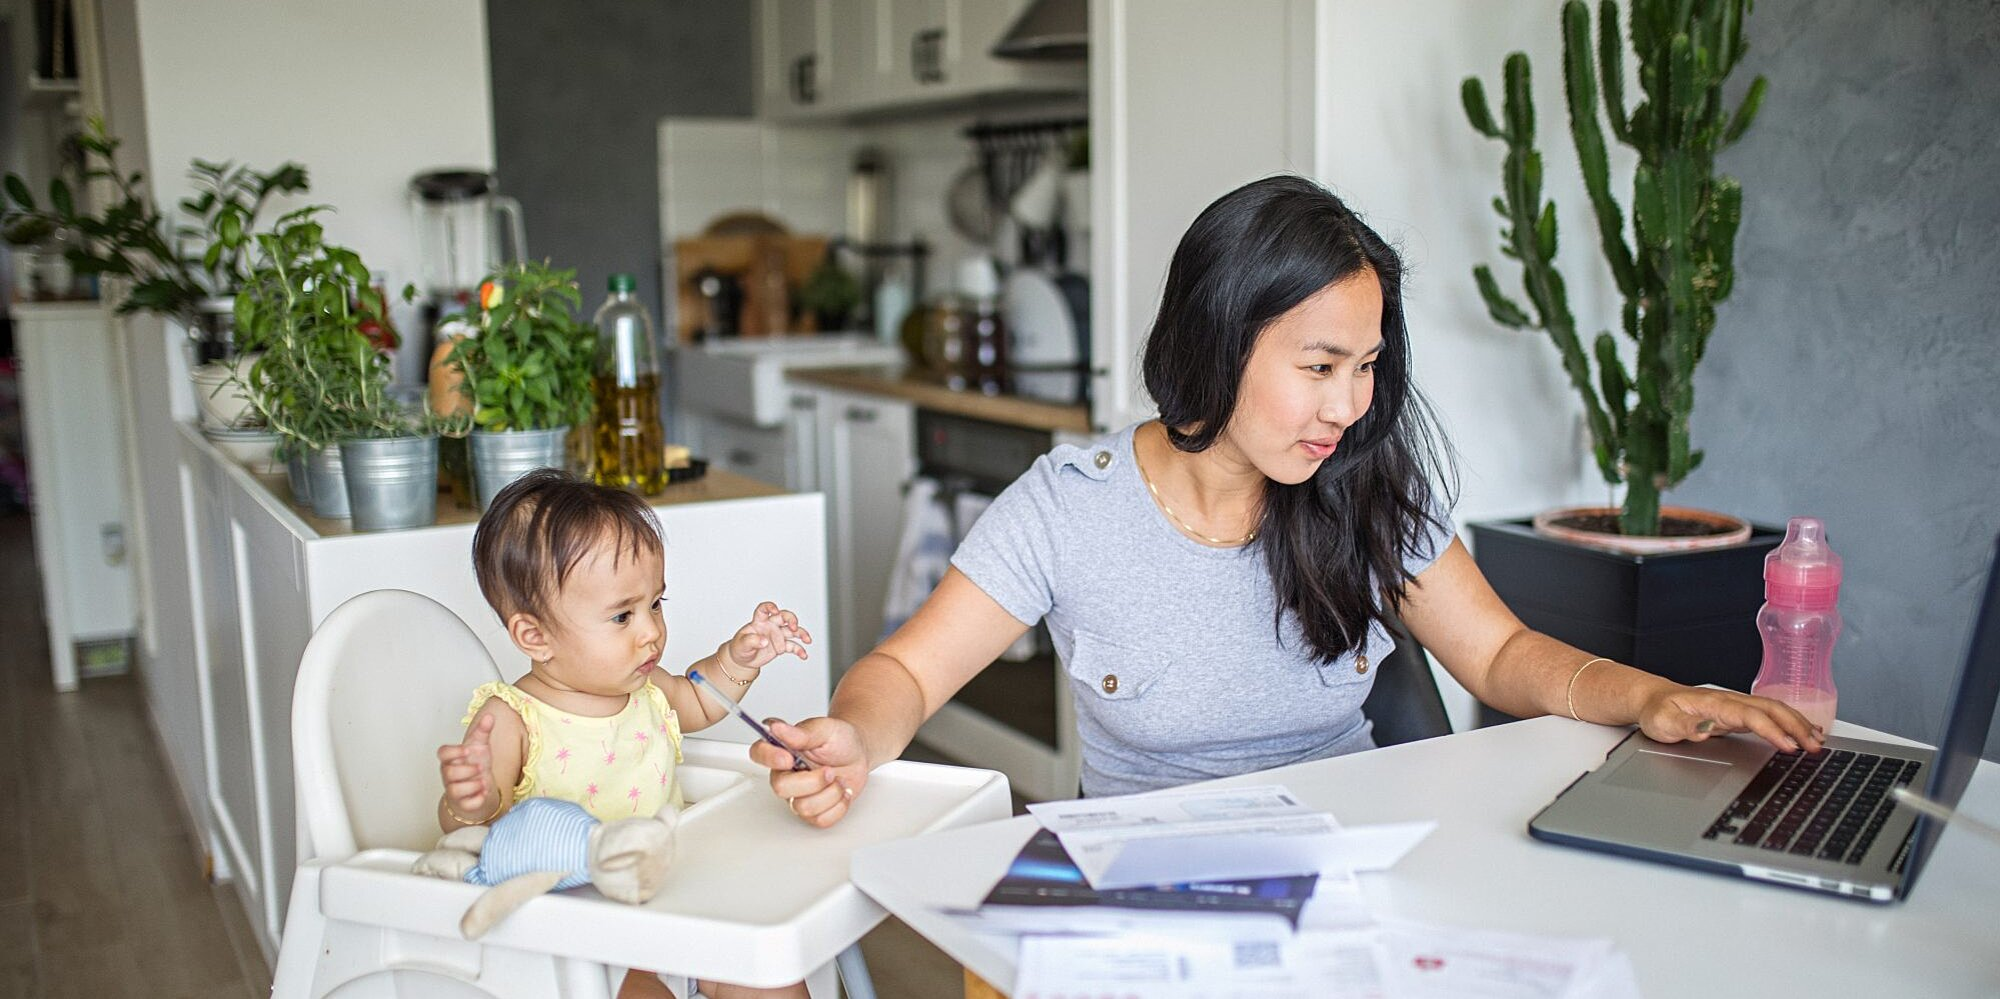 10 Surprising Pandemic-Safe Ways Parents Can Make Extra Money From Home